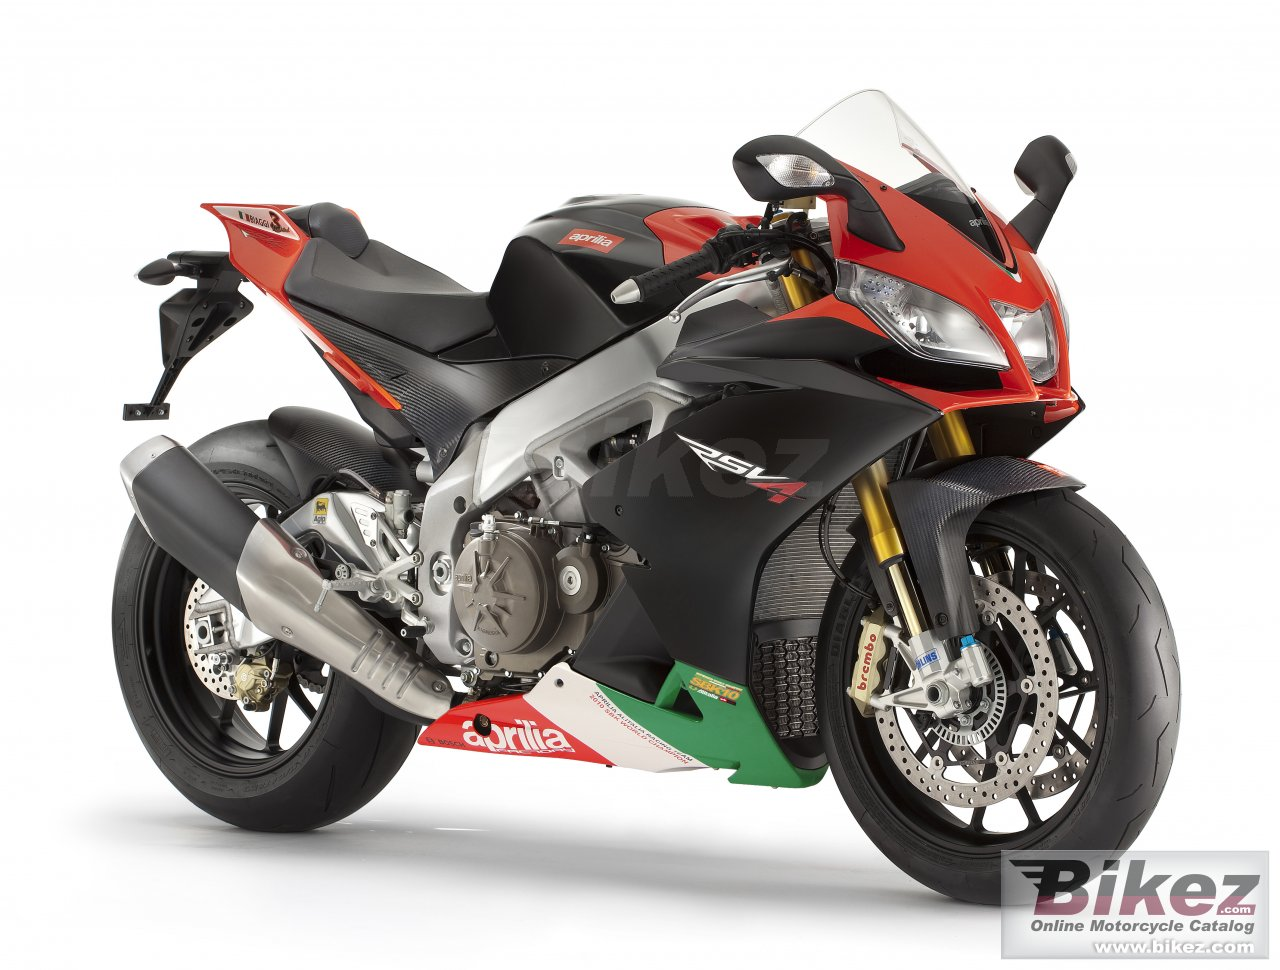 Big Aprilia rsv4 factory aprc se picture and wallpaper from Bikez.com